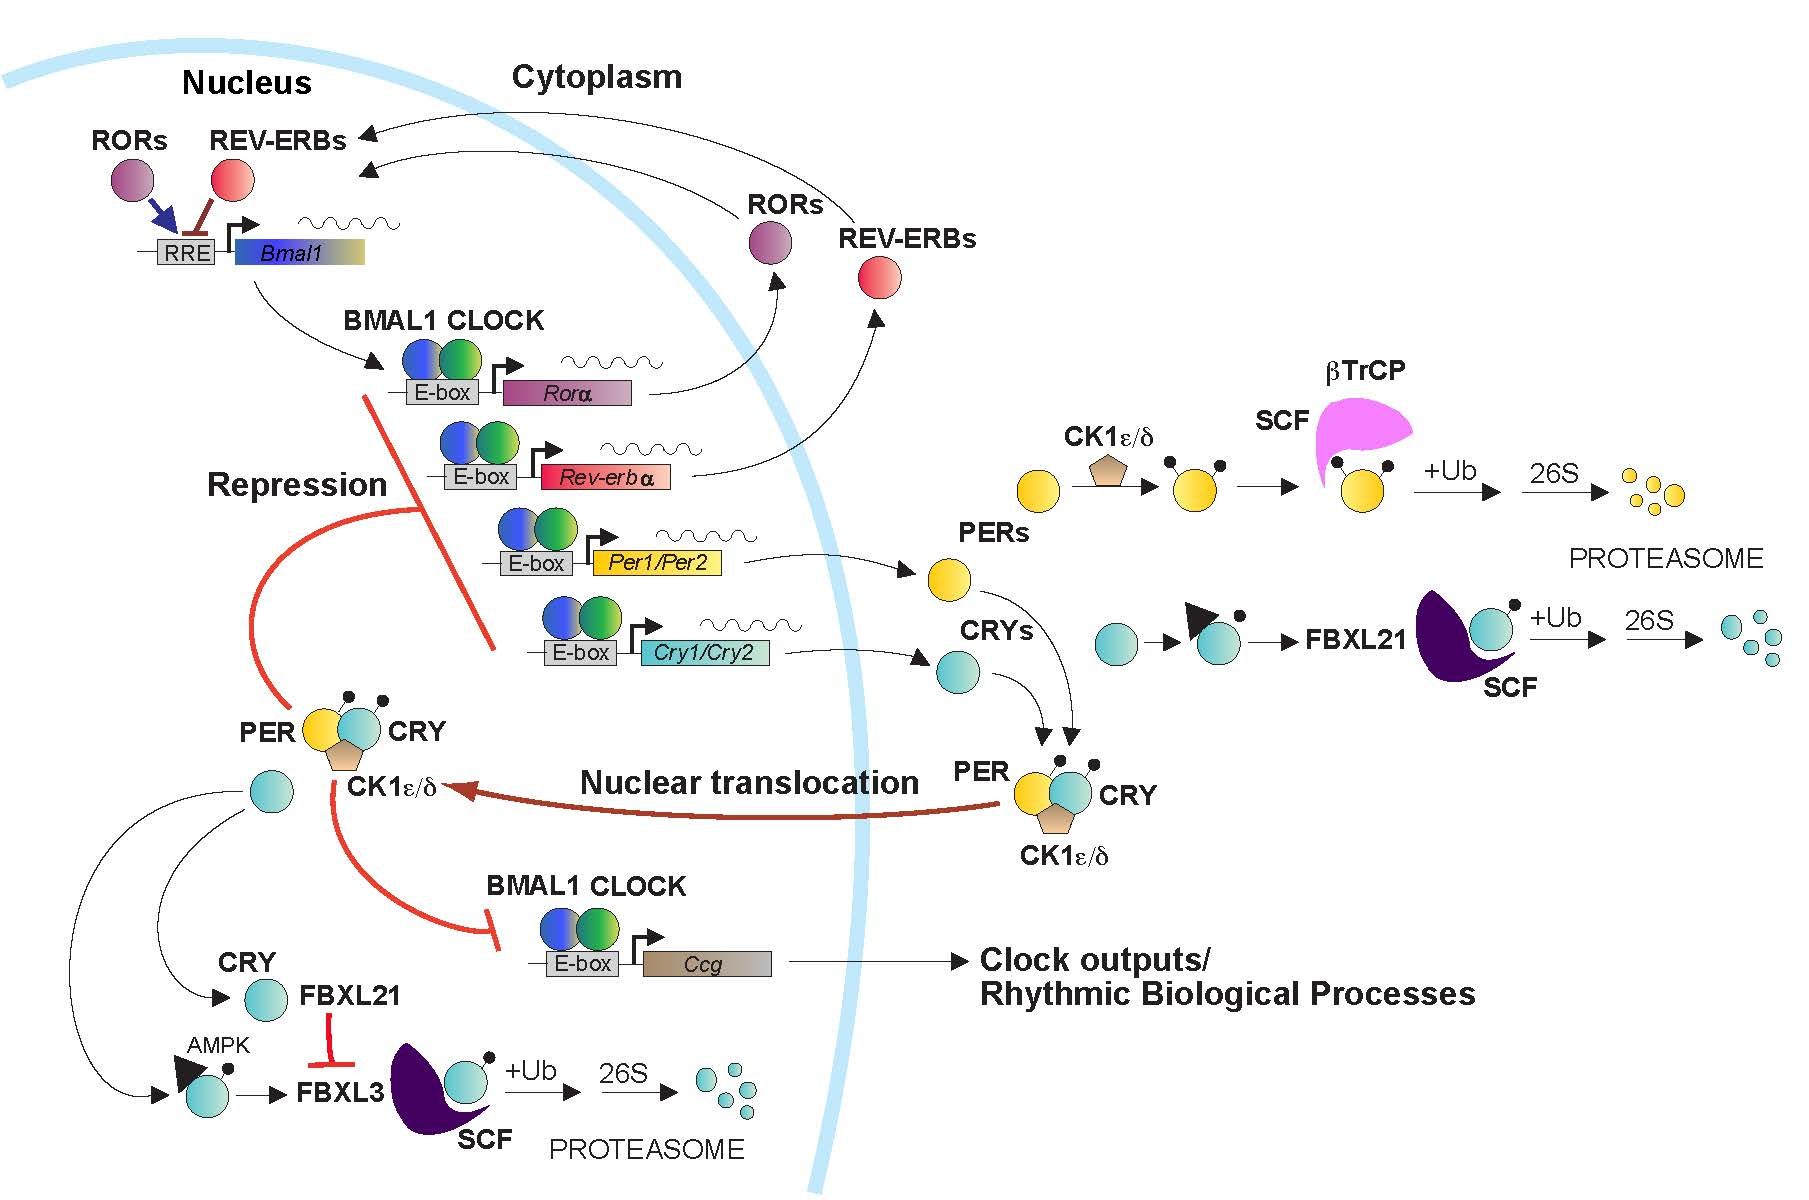 ... pathway for inactive-to-active conversion in a signaling protein